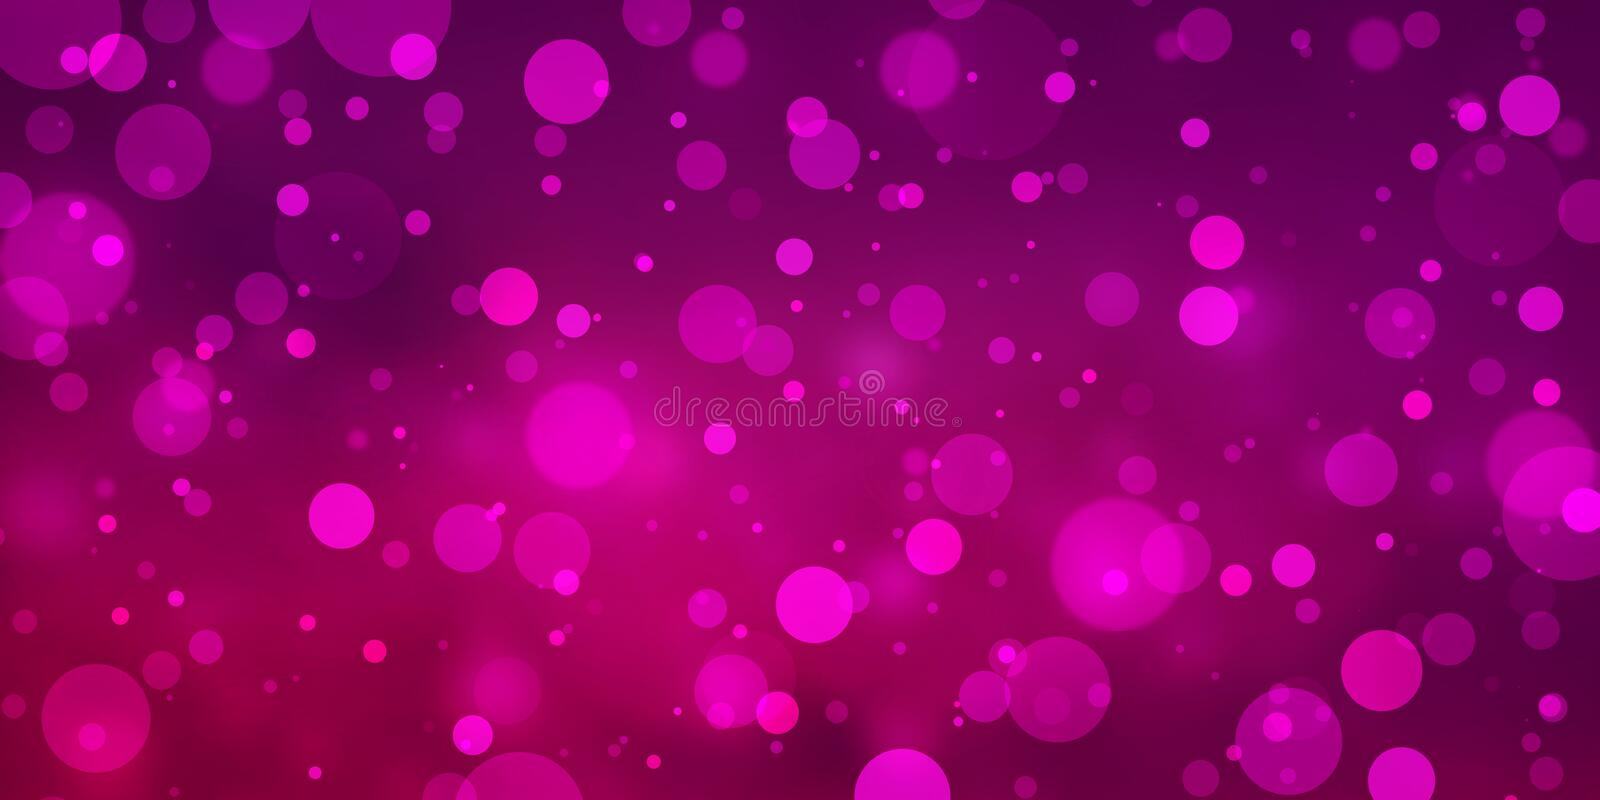 Abstract hot pink and red glitter background with white bokeh lights or circle shapes on blurred purple violet and red stock photography